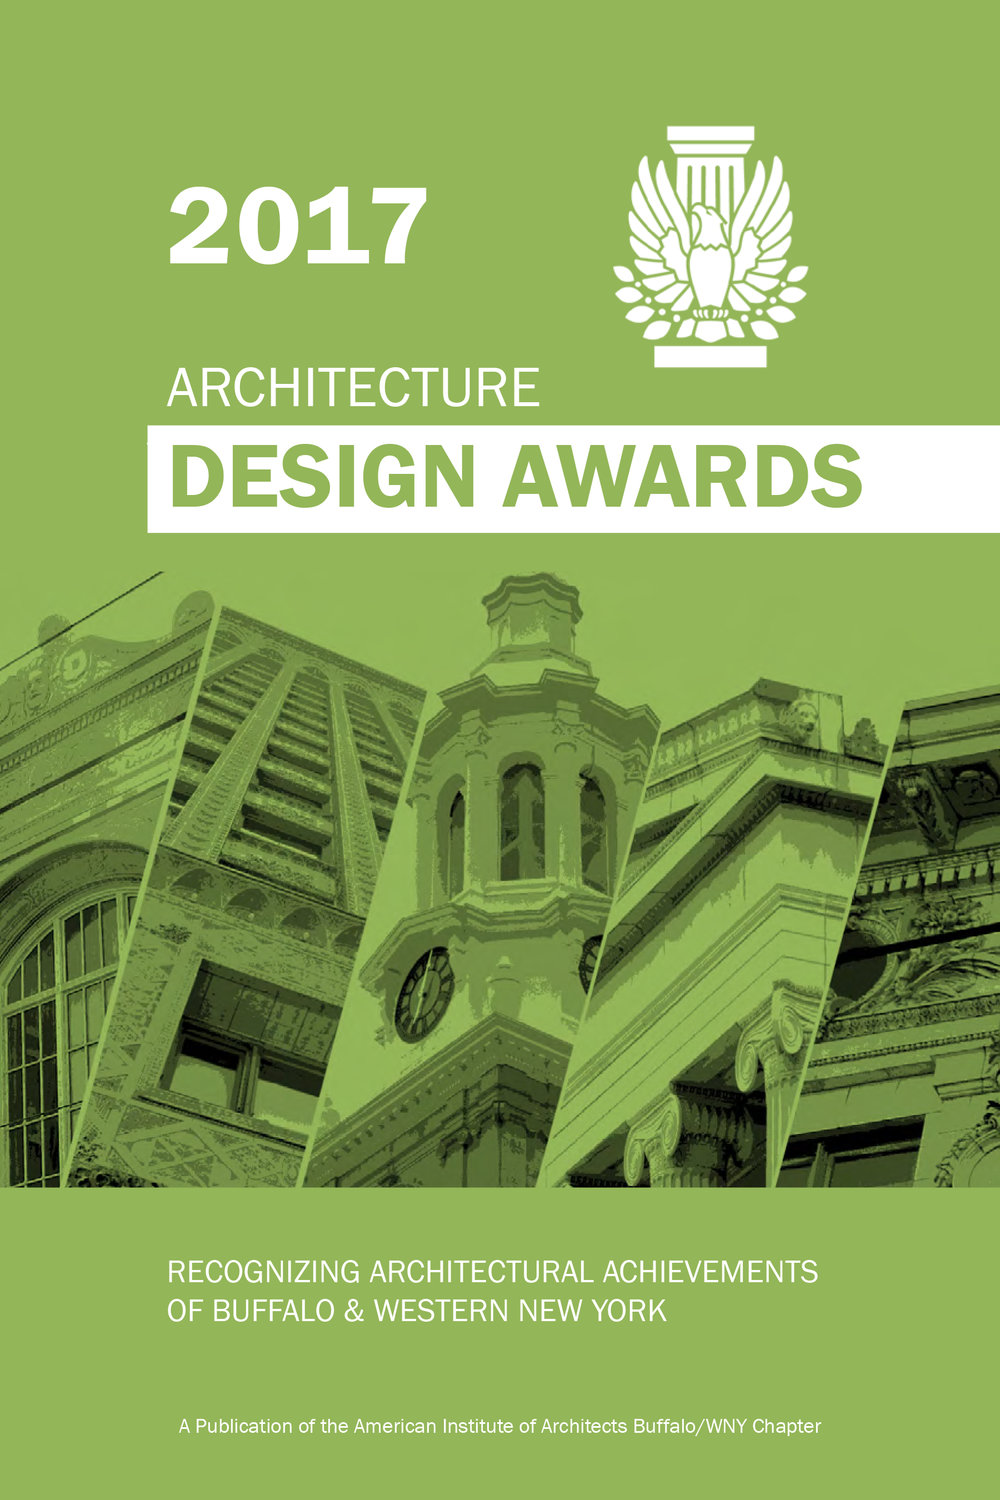 2017 Design Awards cover.jpg